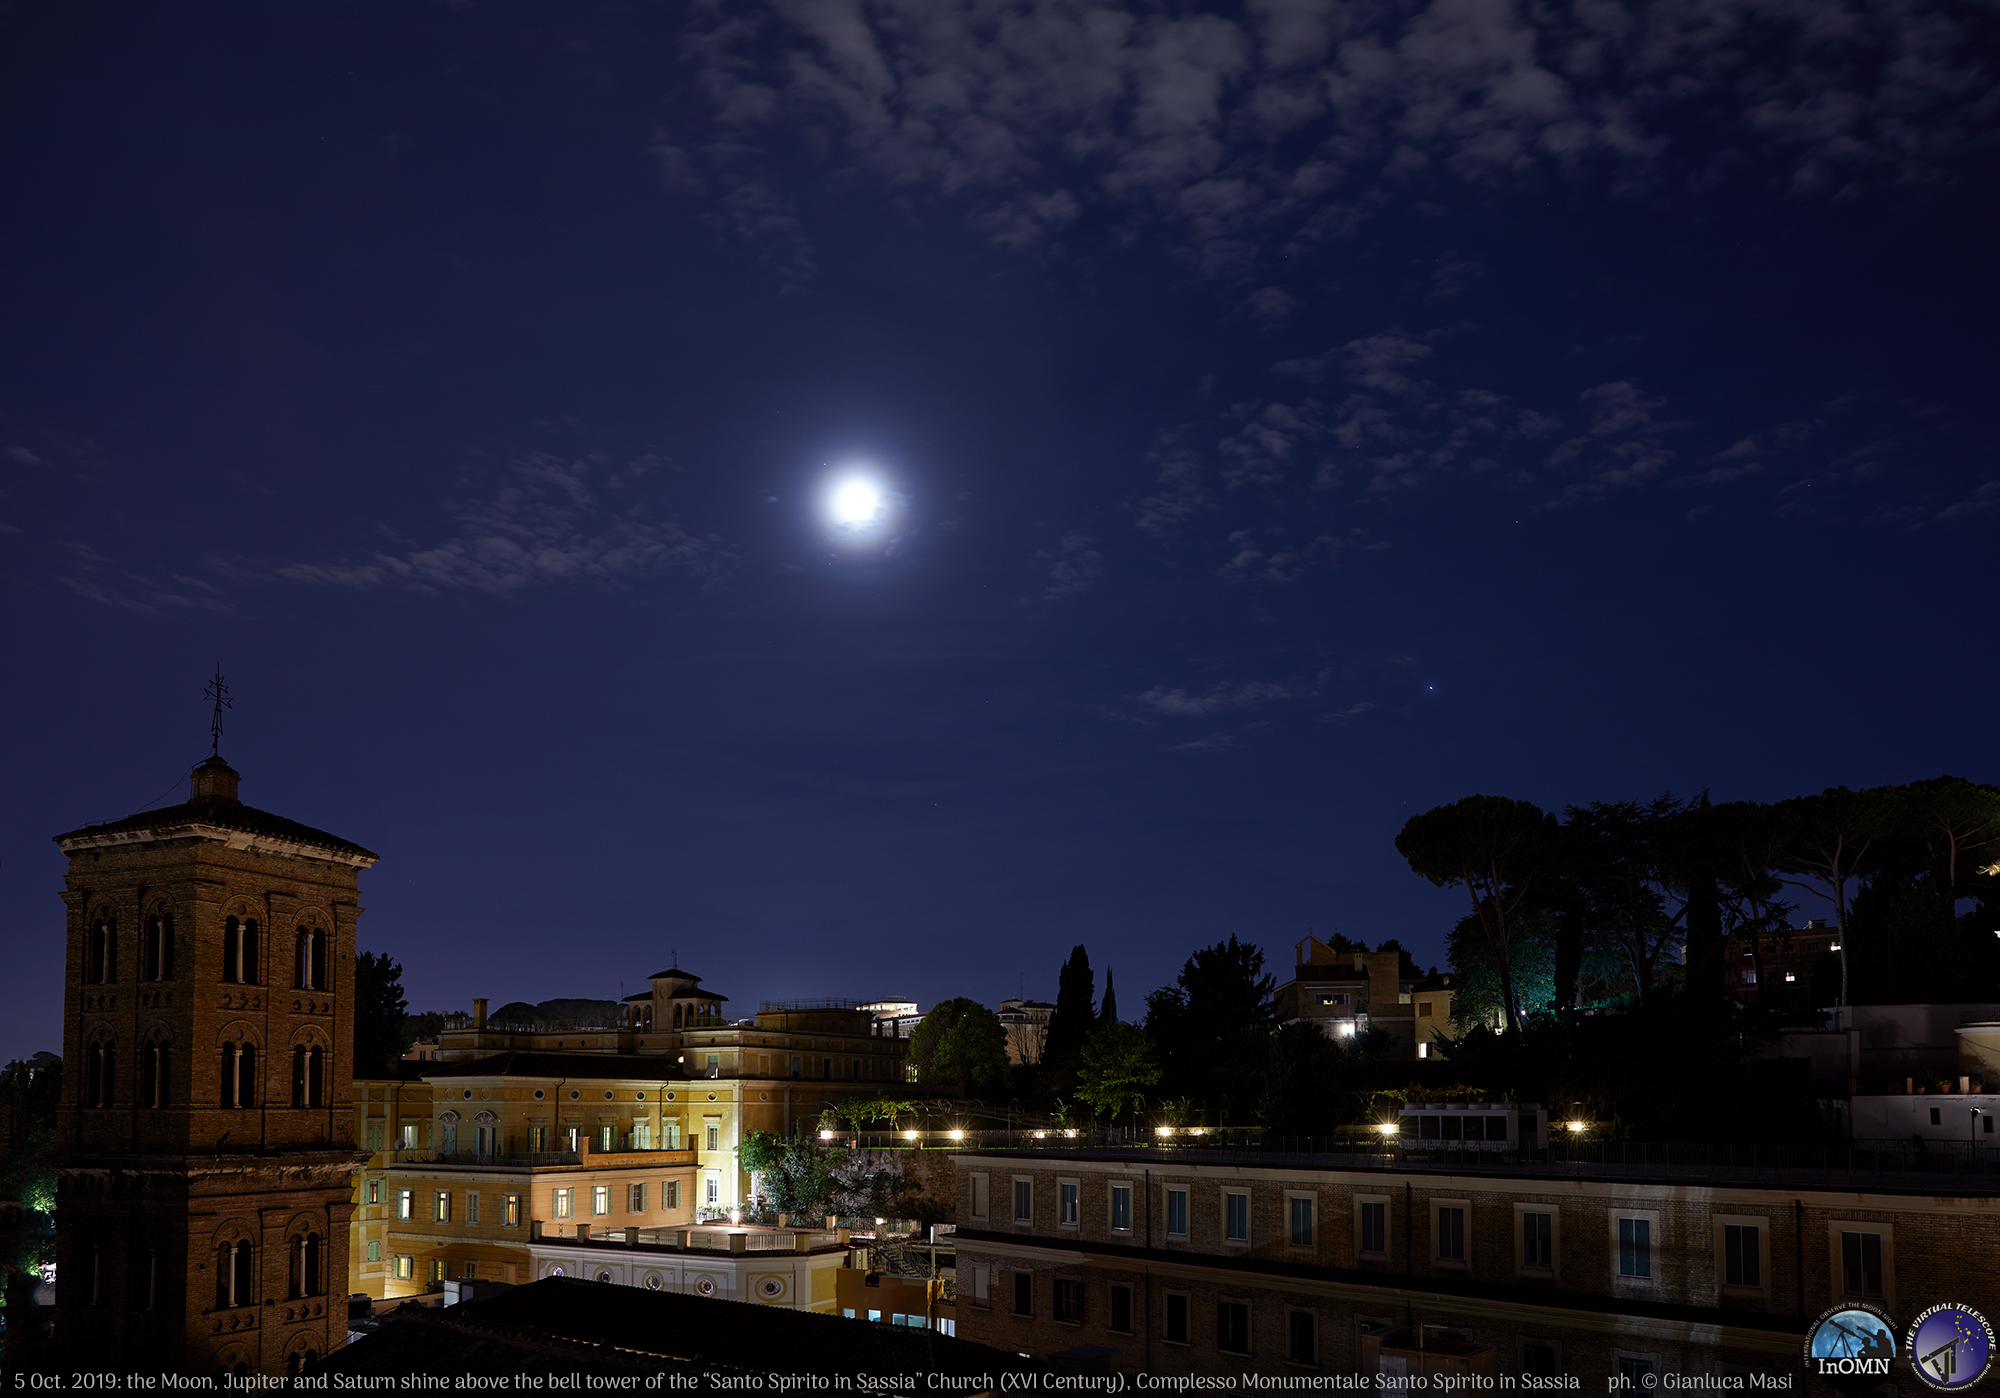 """The Moon, Jupiter and Saturn (just upper left from the Moon) shone above the tower bell of the ancient """"Complesso Monumentale di Santo Spirito in Sassia"""", Rome. - 5 Oct. 2019"""